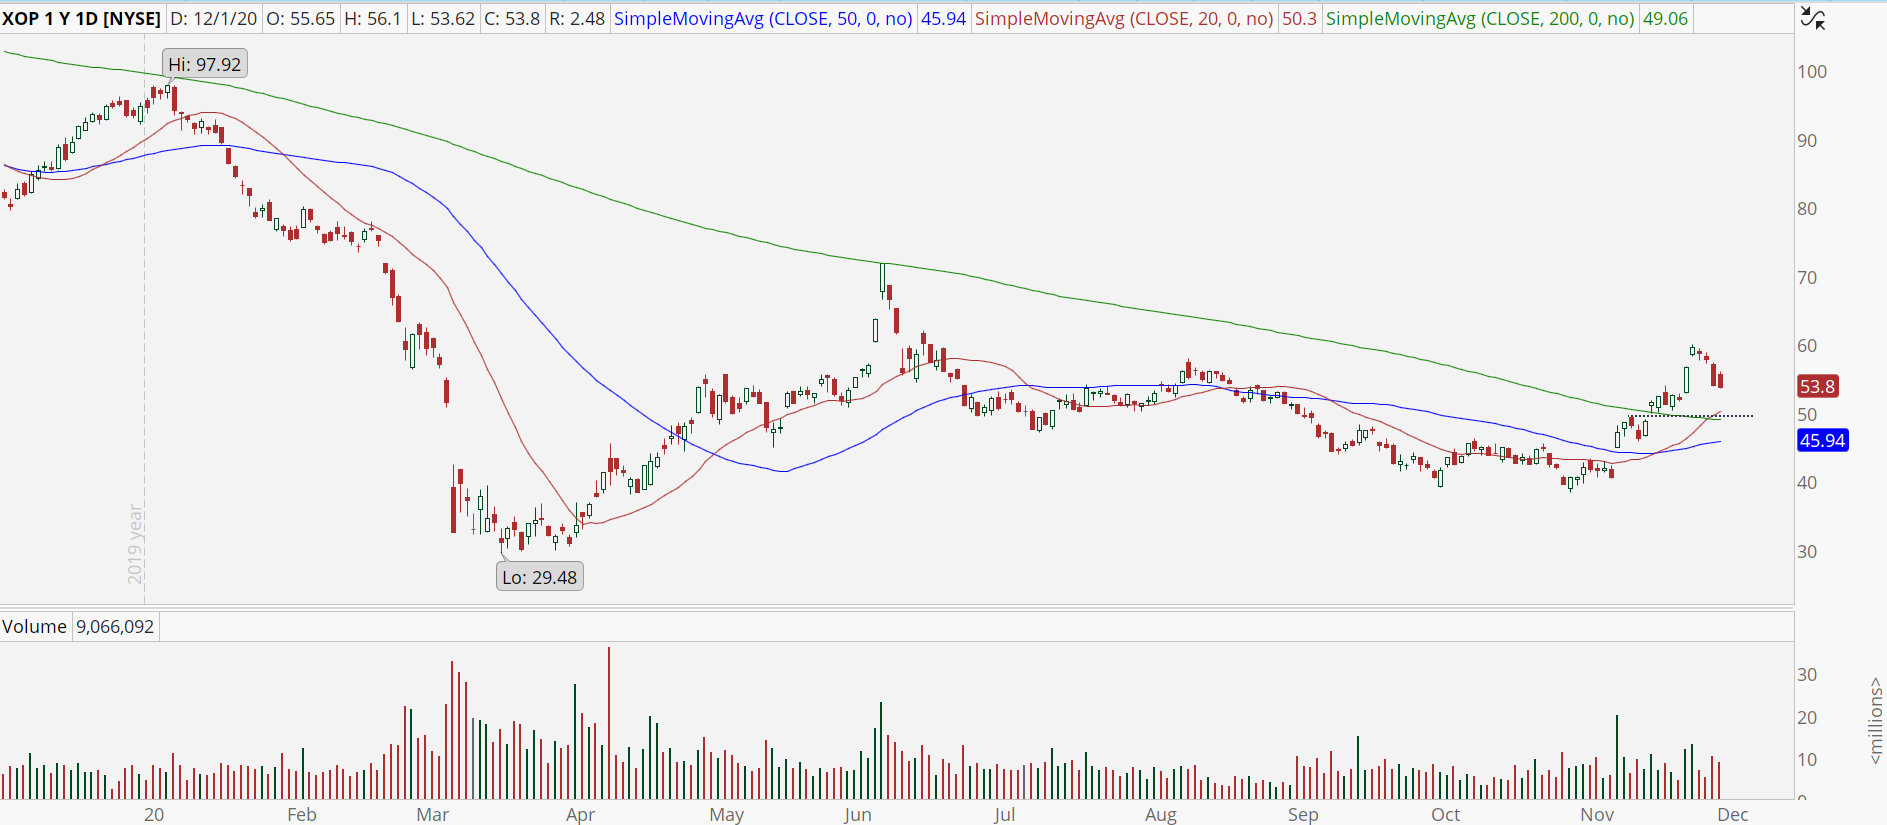 Oil & Gas ETF (XOP) with buy the dip setup